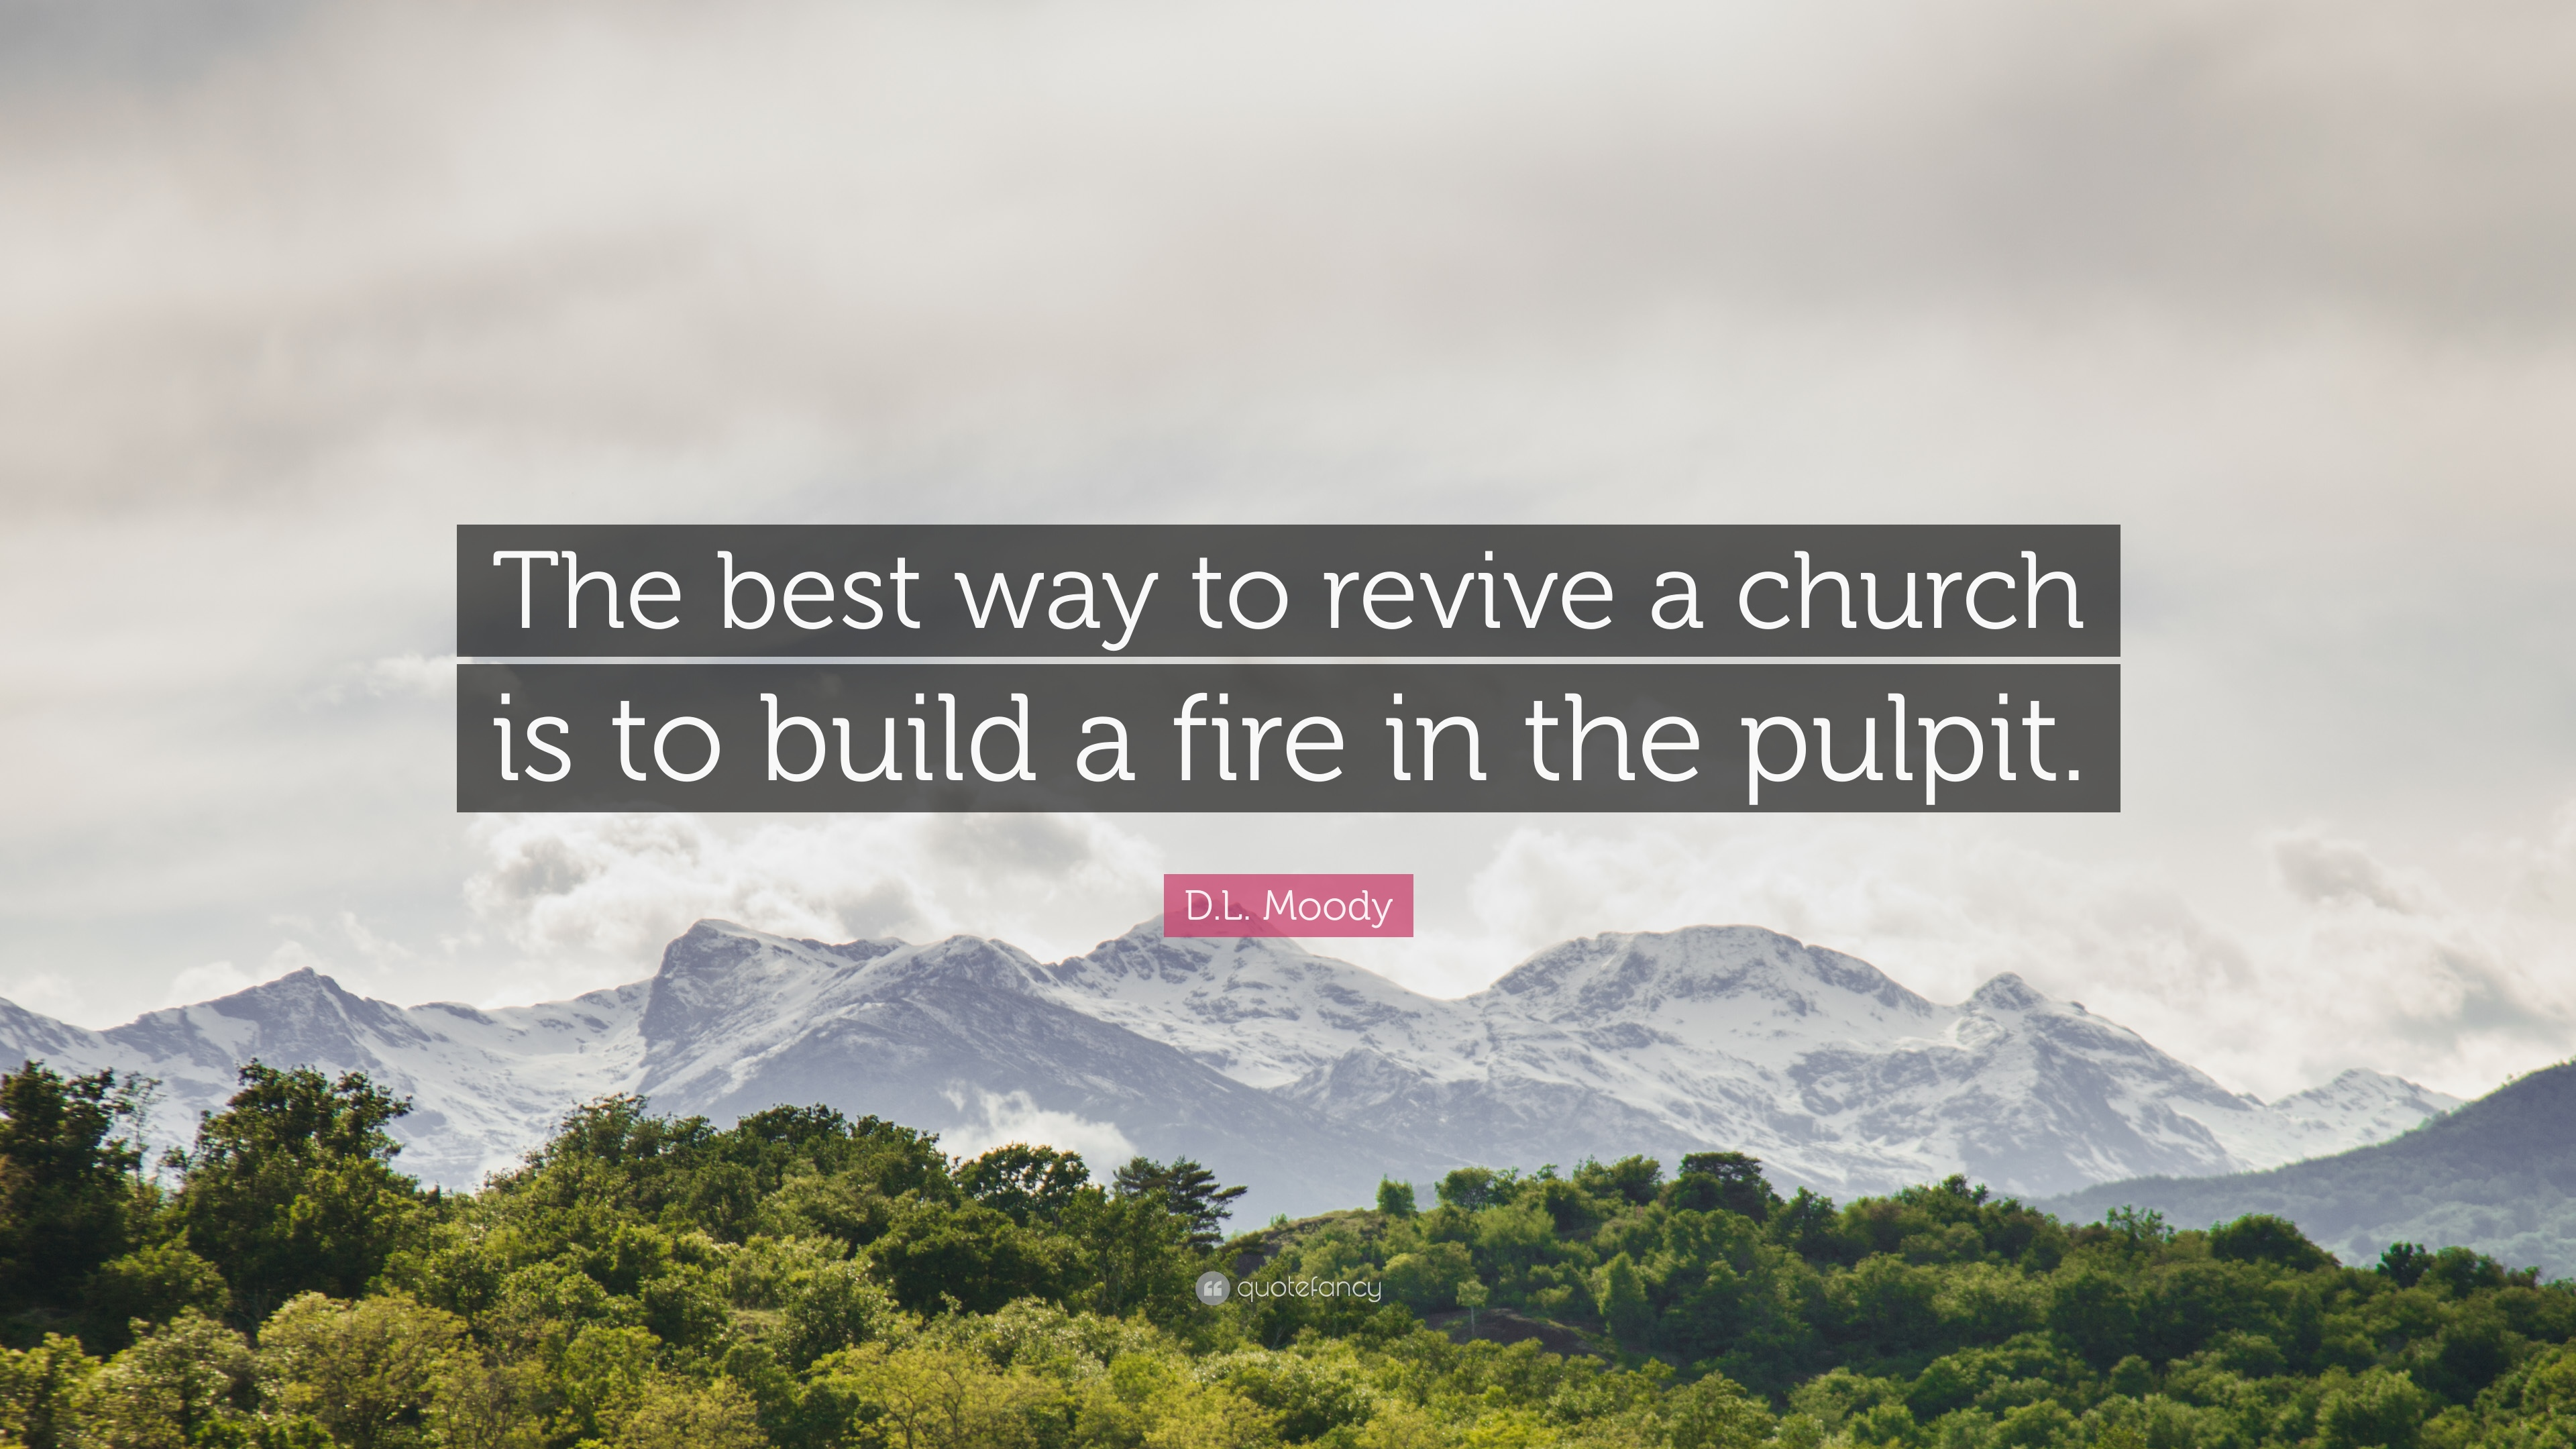 Dl Moody Quote The Best Way To Revive A Church Is To Build A